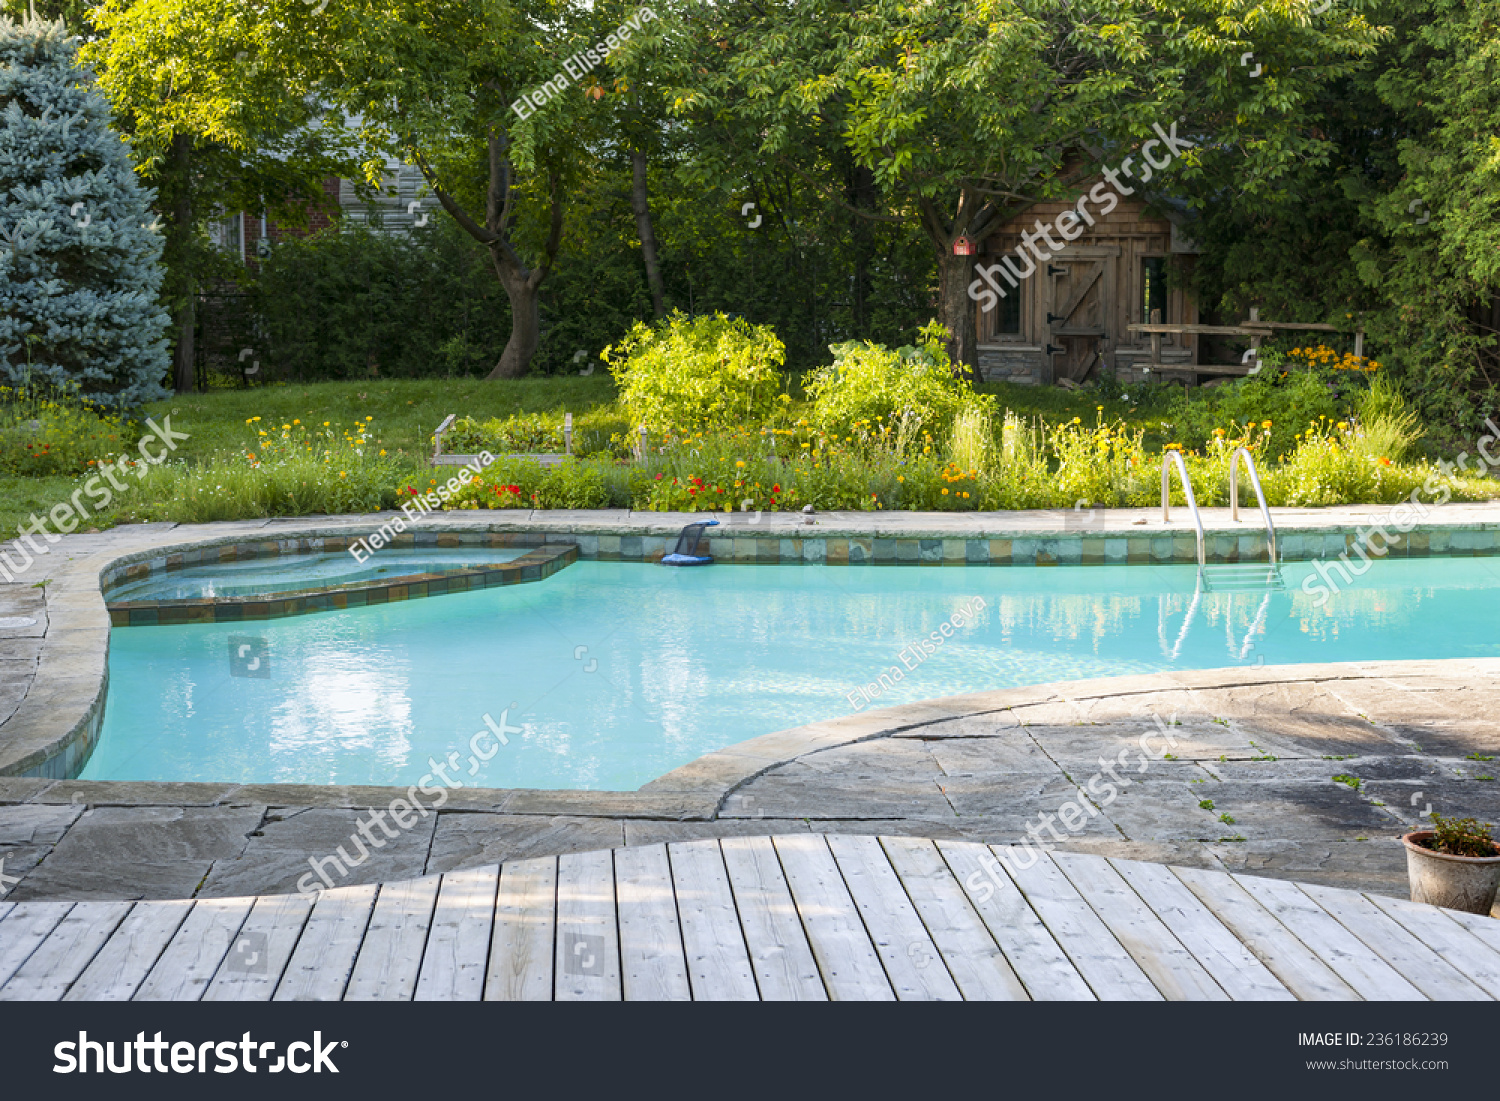 Backyard With Outdoor Inground Residential Swimming Pool Garden Deck And Stone Patio Stock